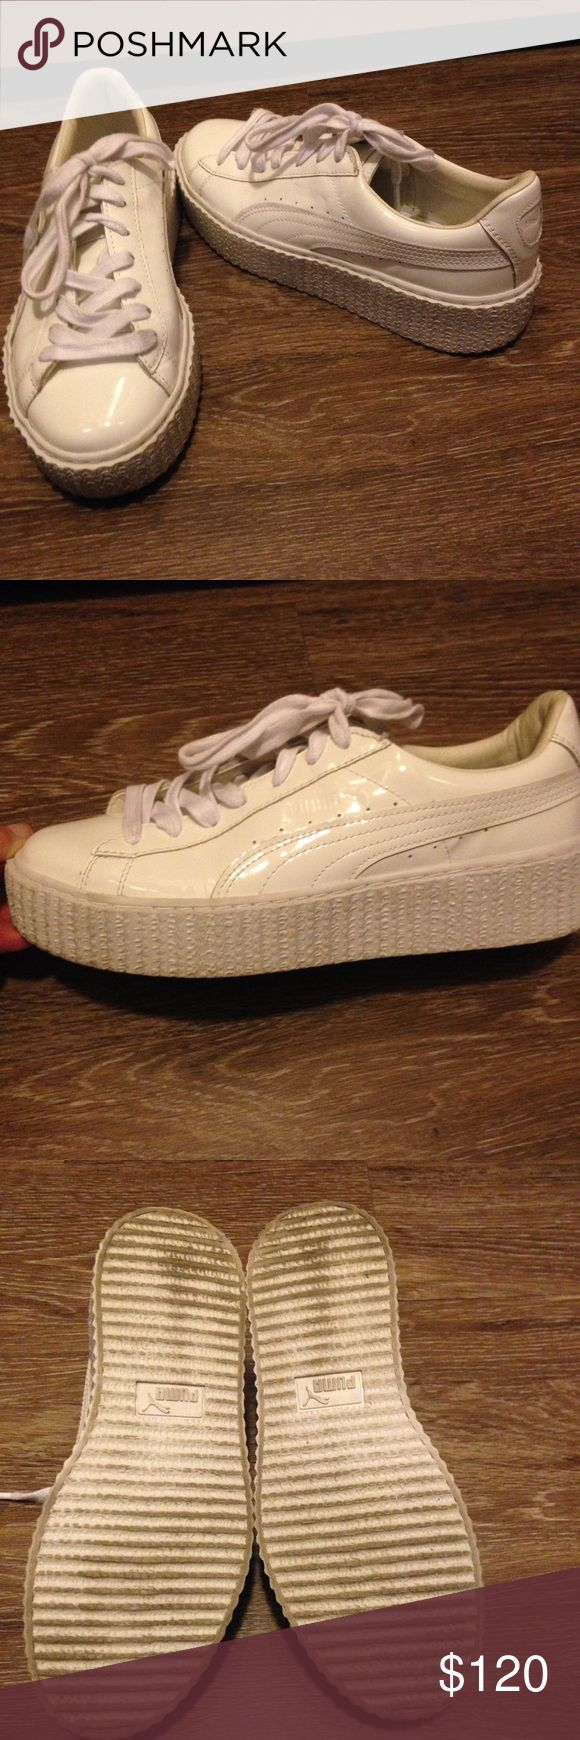 Puma Fenty White patent creeper sneakers 8 Puma Fenty Rihanna white patent Creeper sneakers 100% authentic gently worn box not included 🚨please no trades🚨 Puma Shoes Sneakers